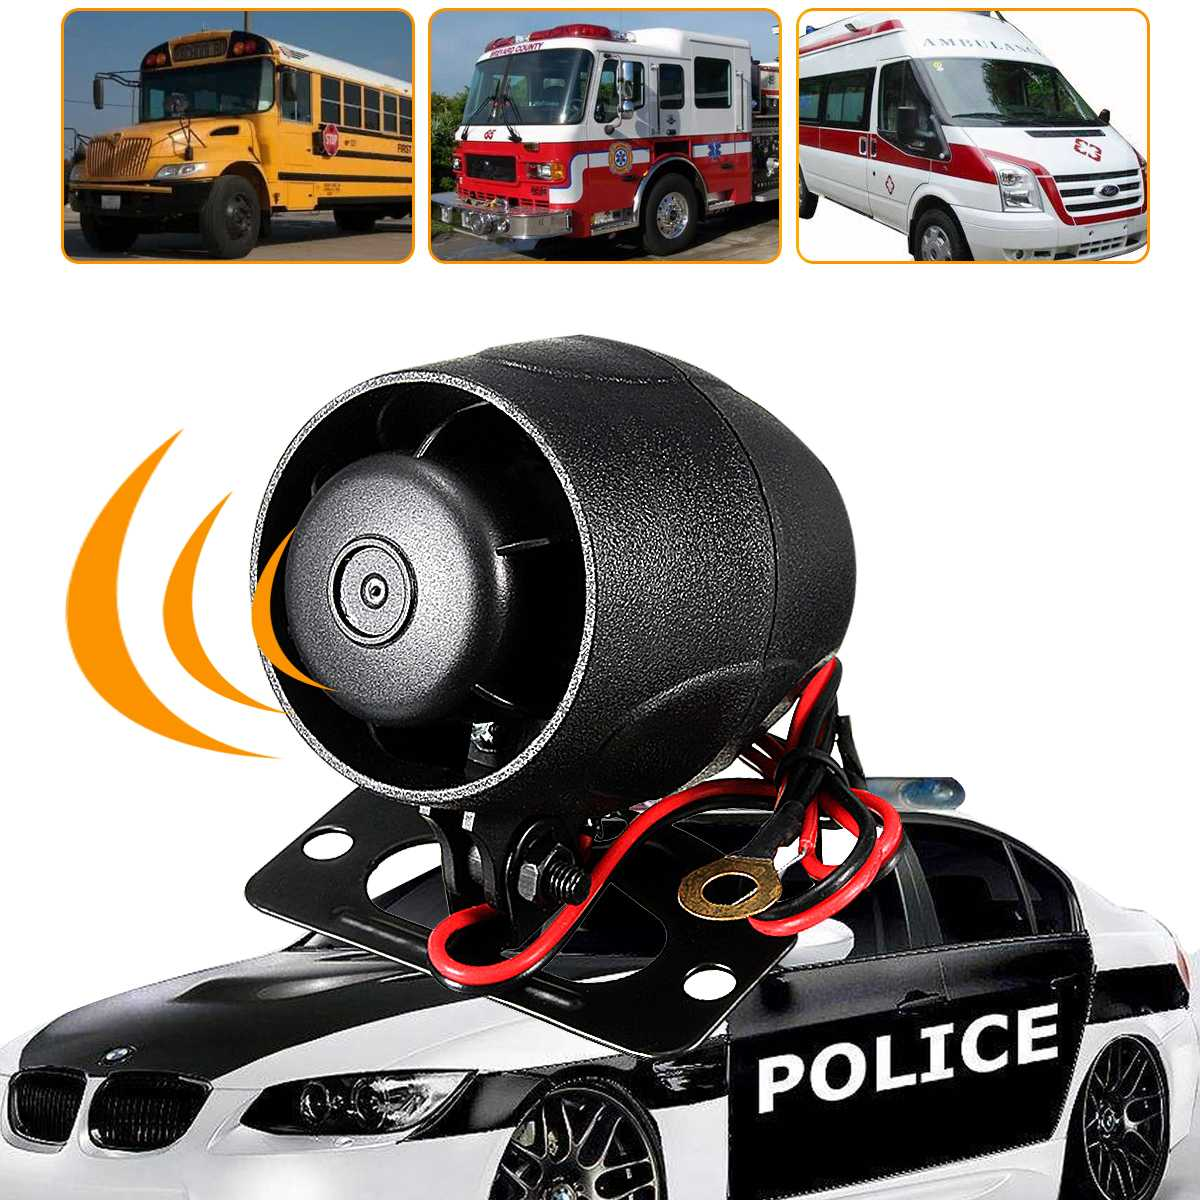 12V DC Car Van Truck Auto Black Vehicle Alarm Warning Siren Horn Security Bike Vehicle Alarm Warning Siren Horn Security